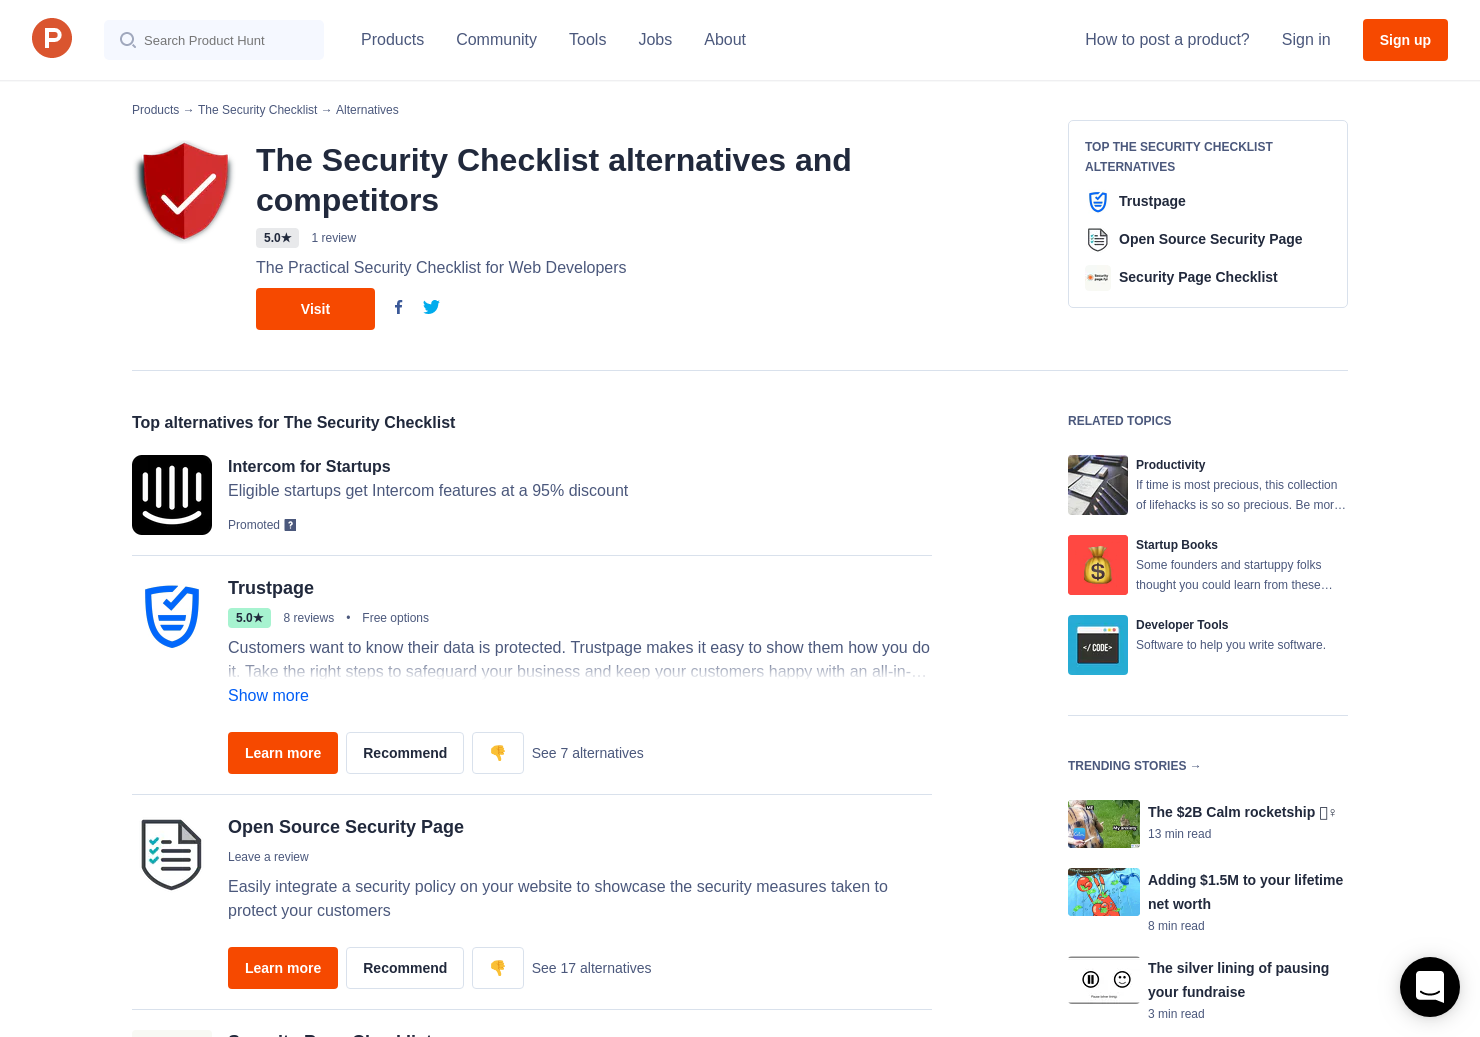 10 Alternatives To The Security Checklist Product Hunt Data Products